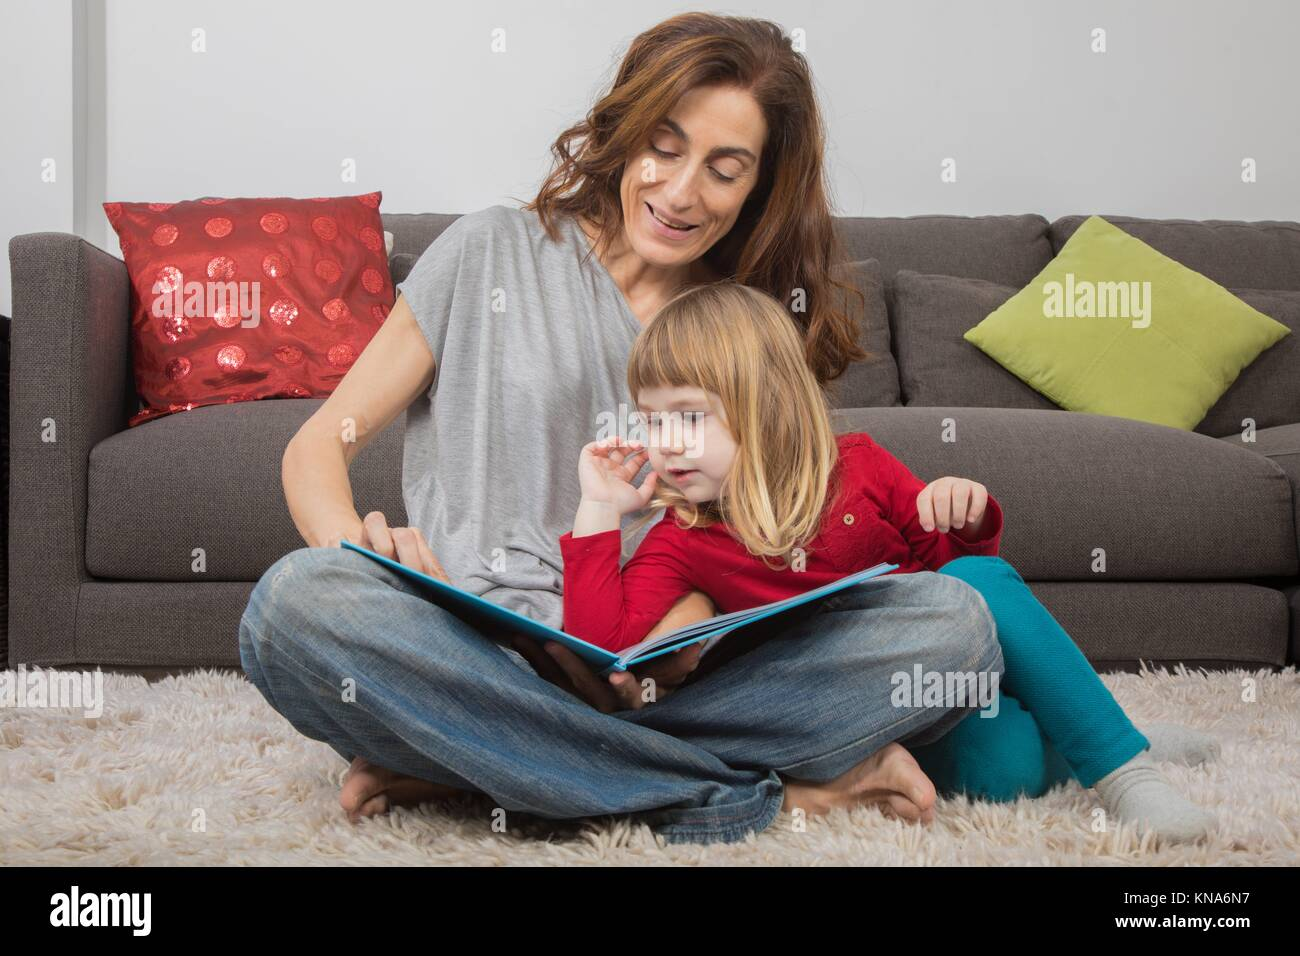 blonde child three years old, with red and green clothes, leaning on mother woman in jeans, reading together a story - Stock Image